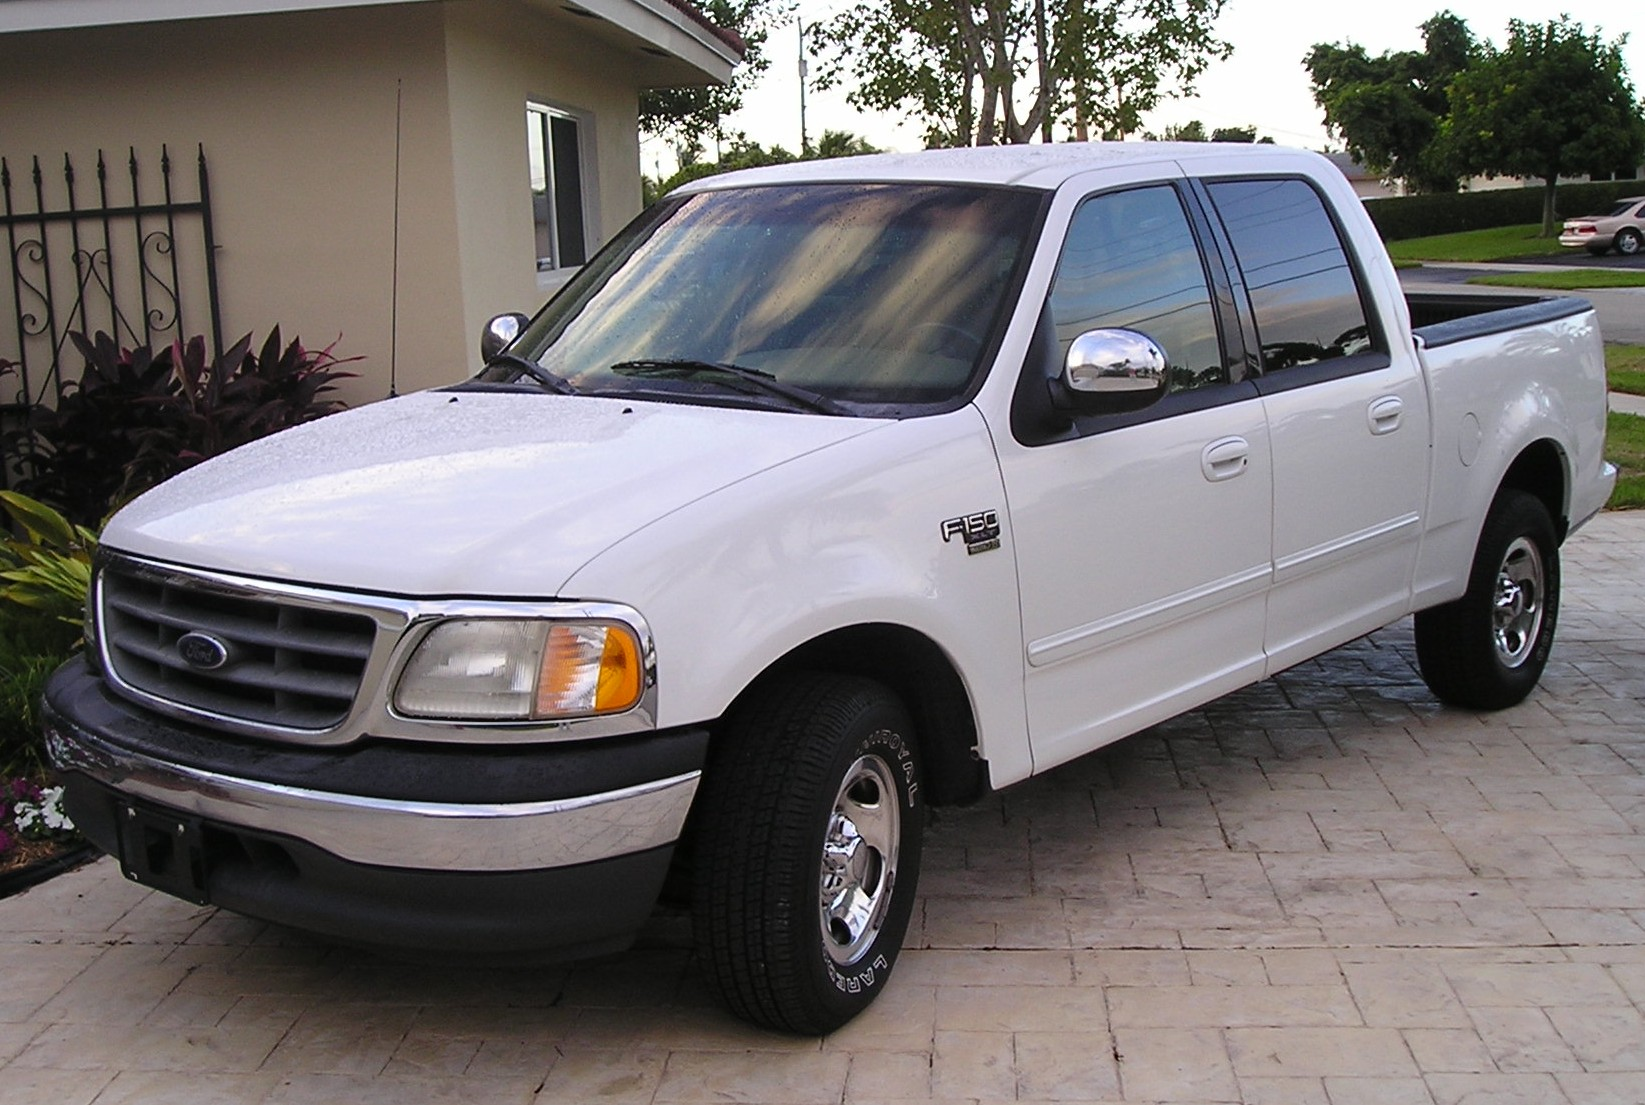 2001 FORD F-150 - Image #2